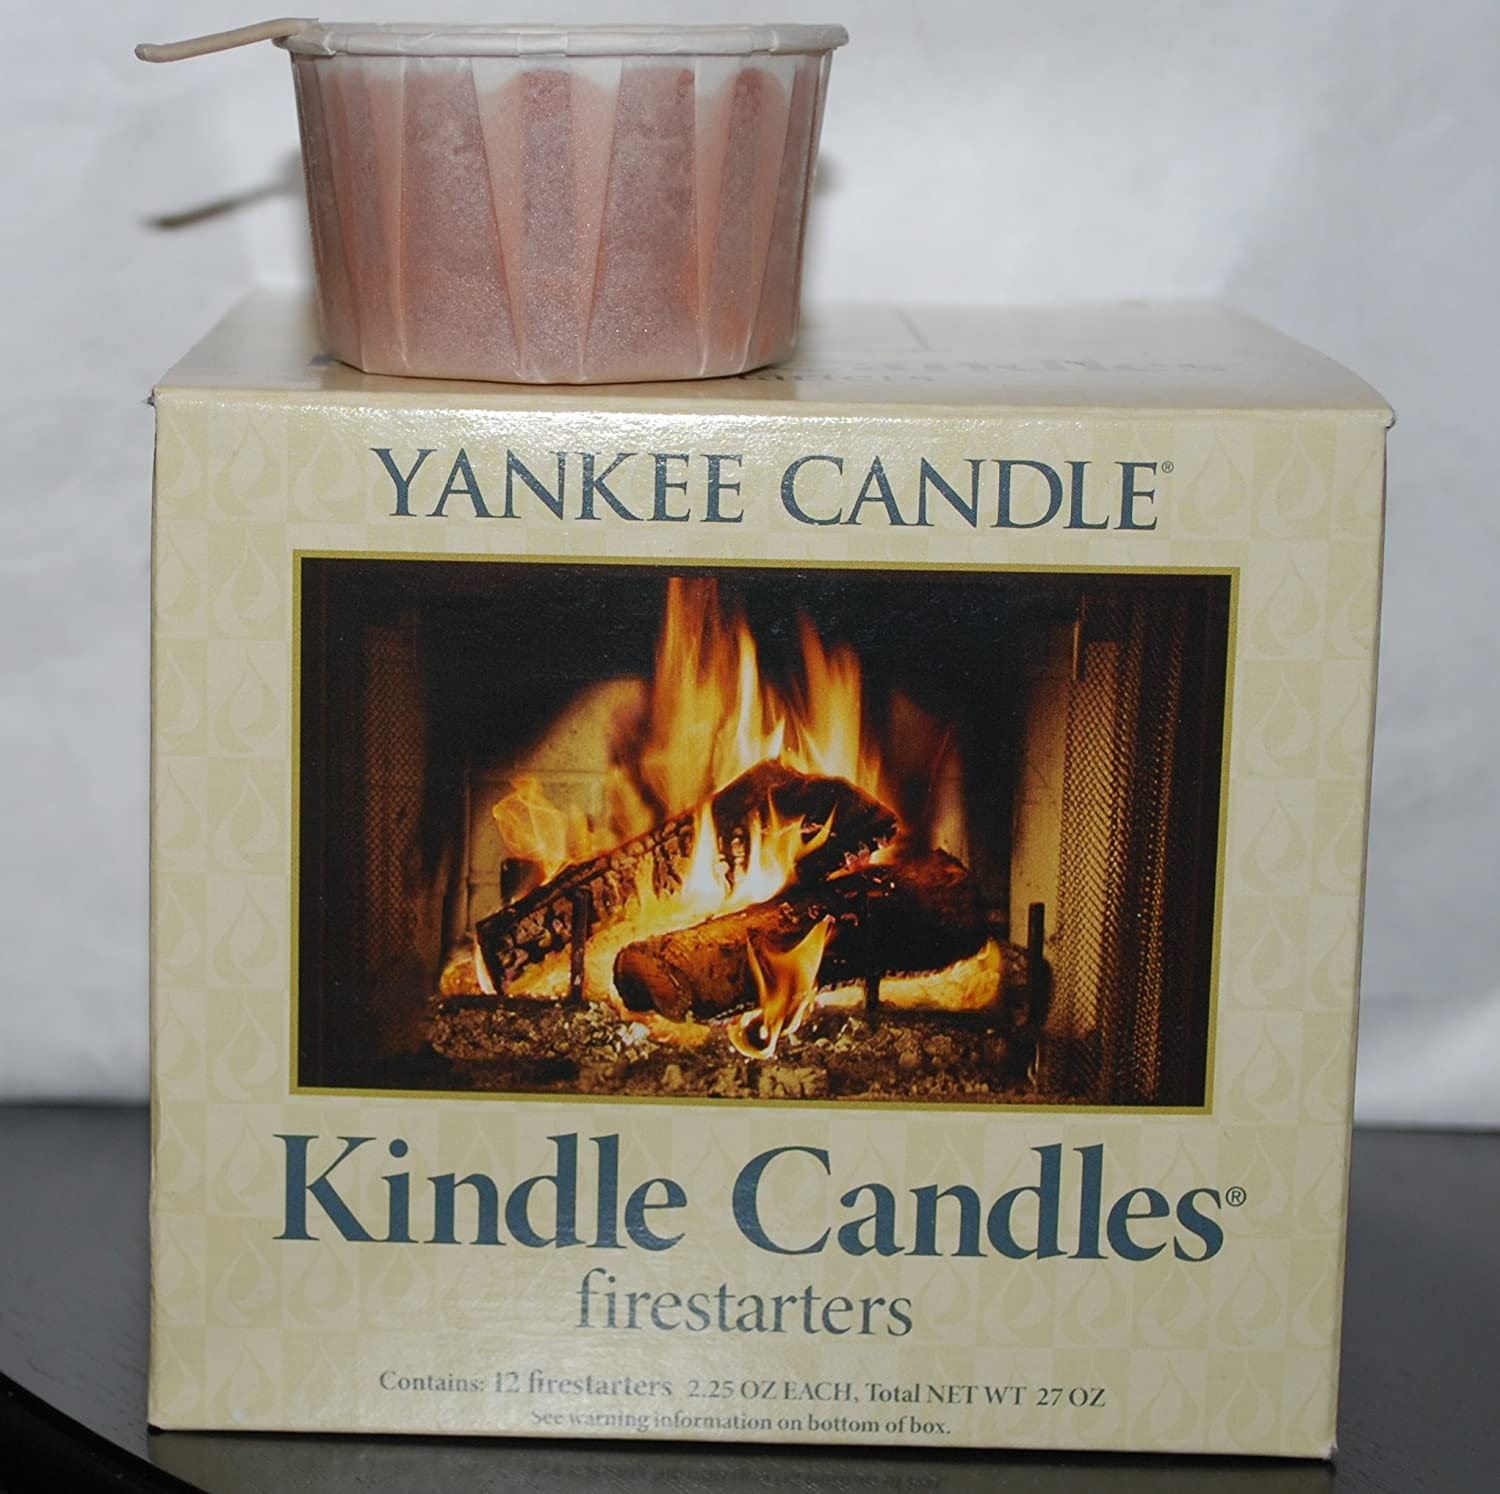 Kindle Candle 12-pack - Yankee Candle